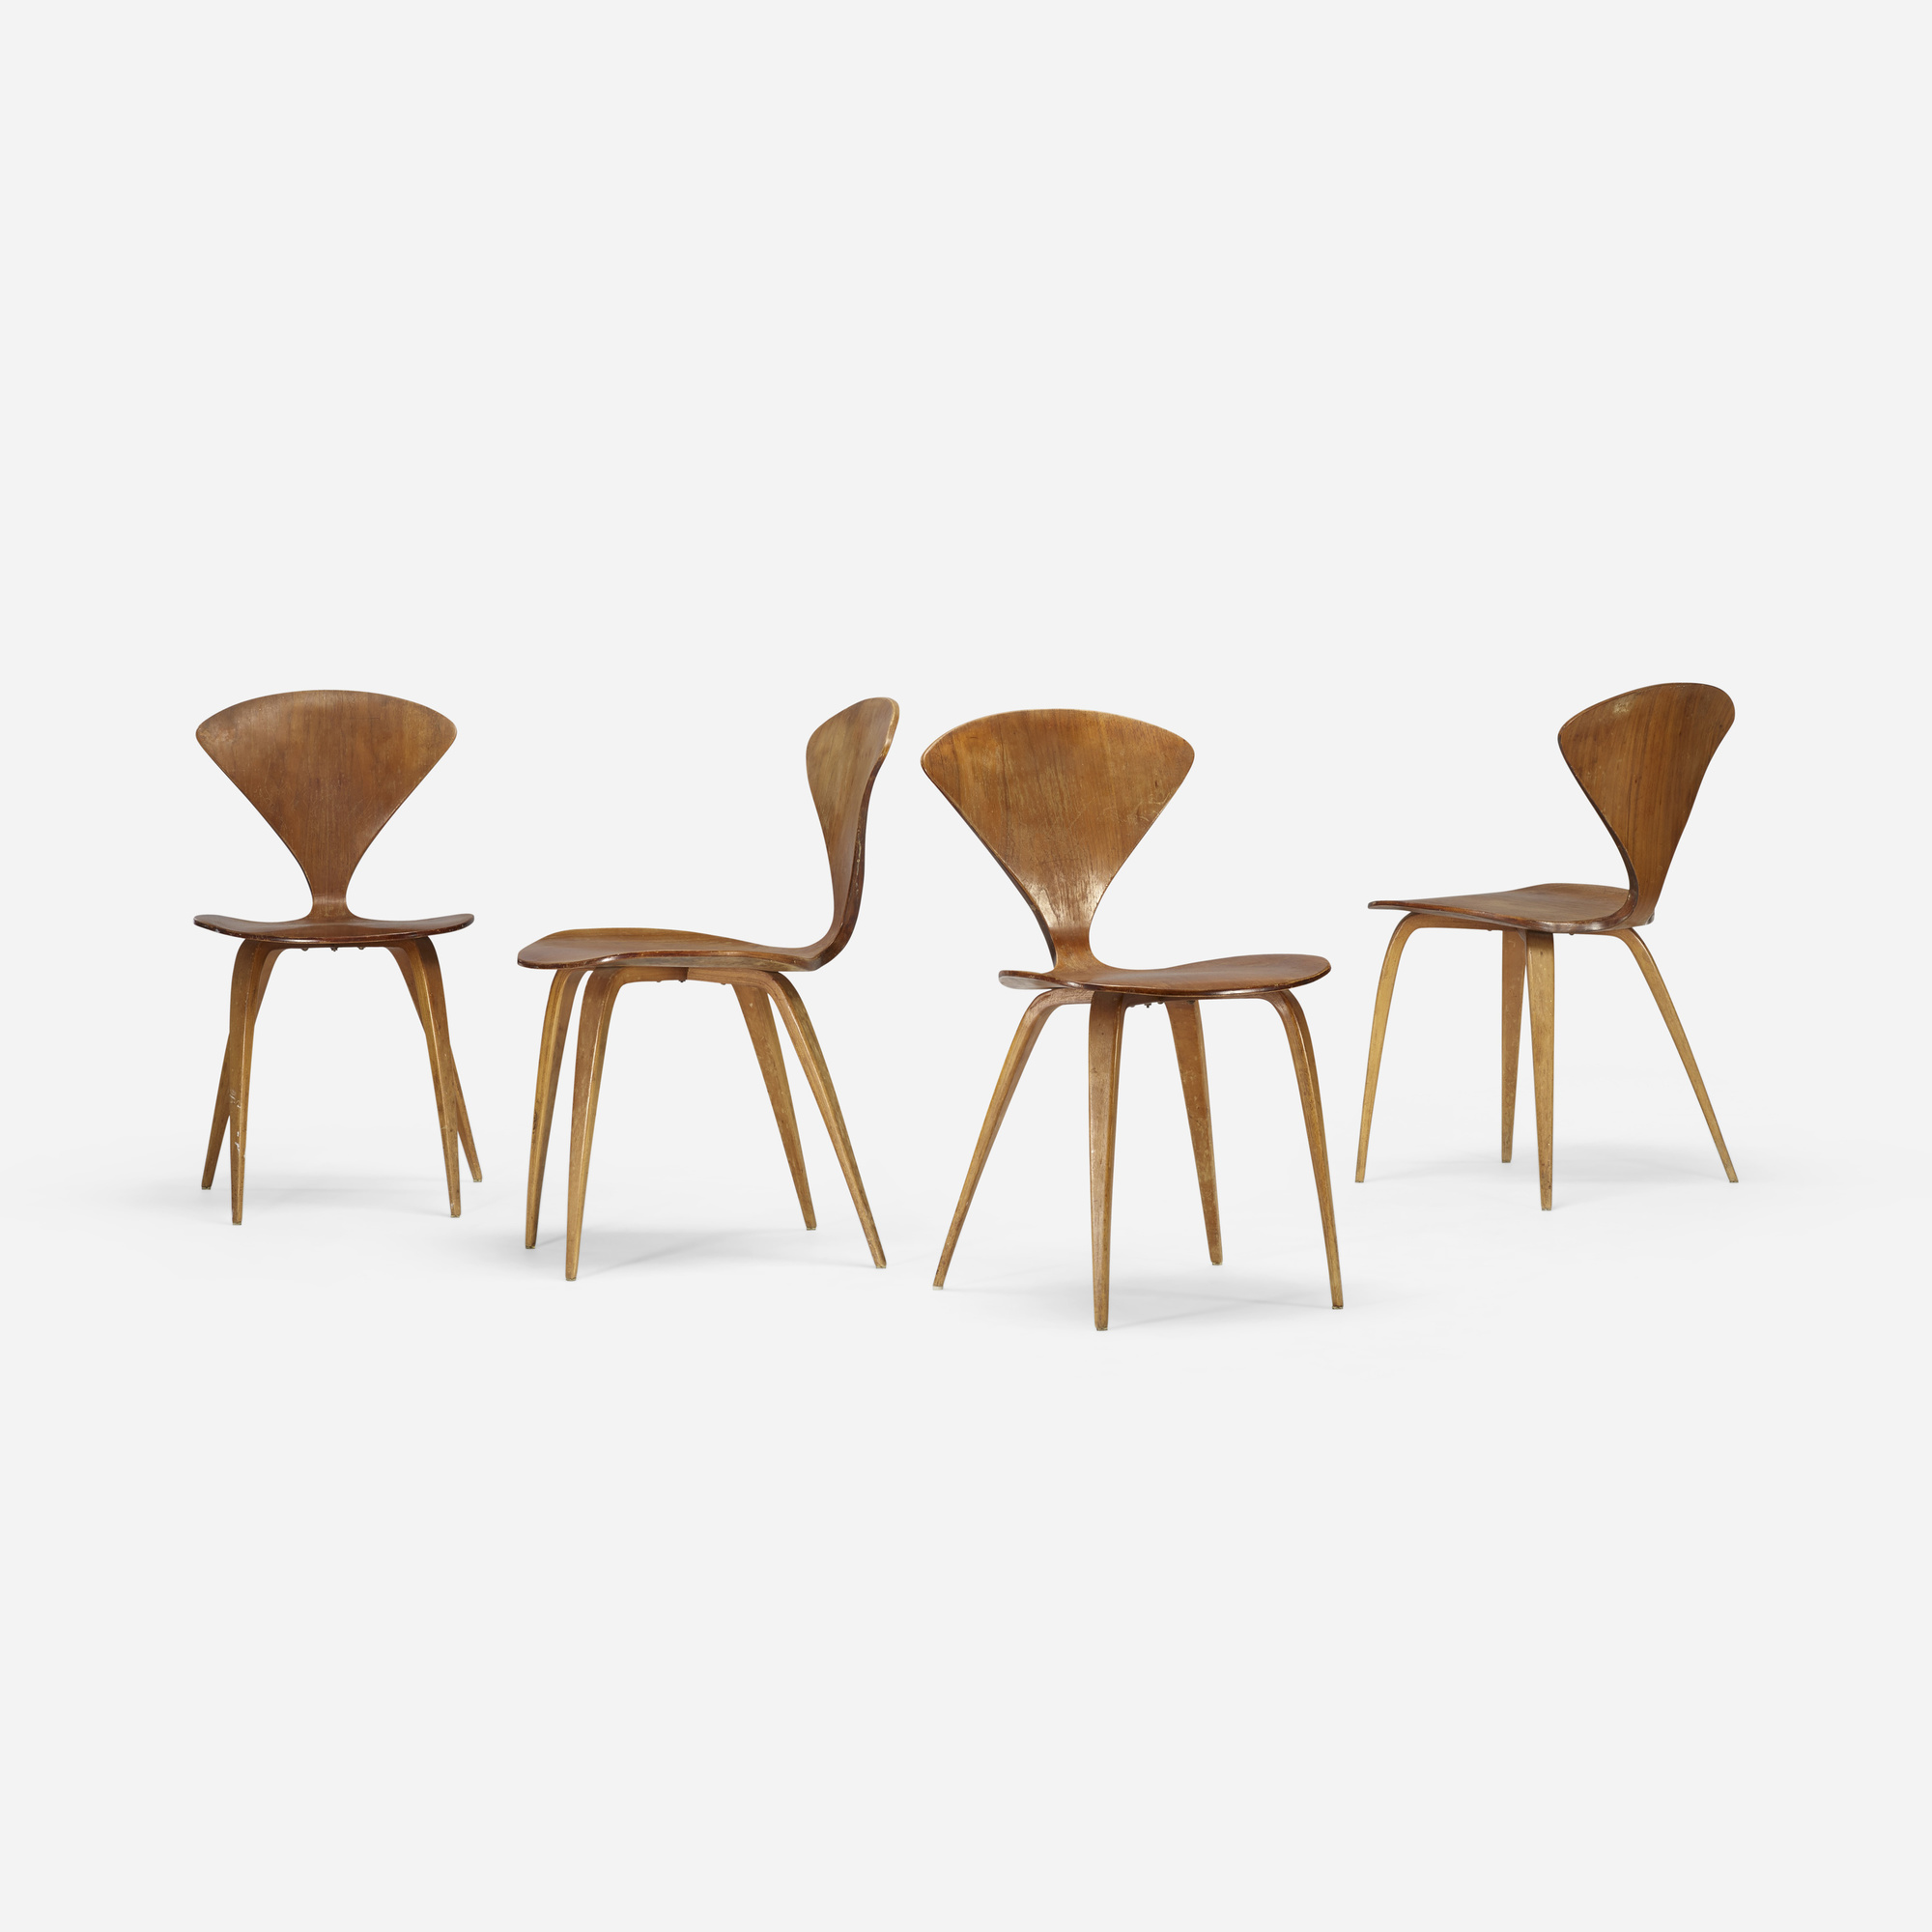 202: Norman Cherner / dining chairs, set of four (3 of 4)